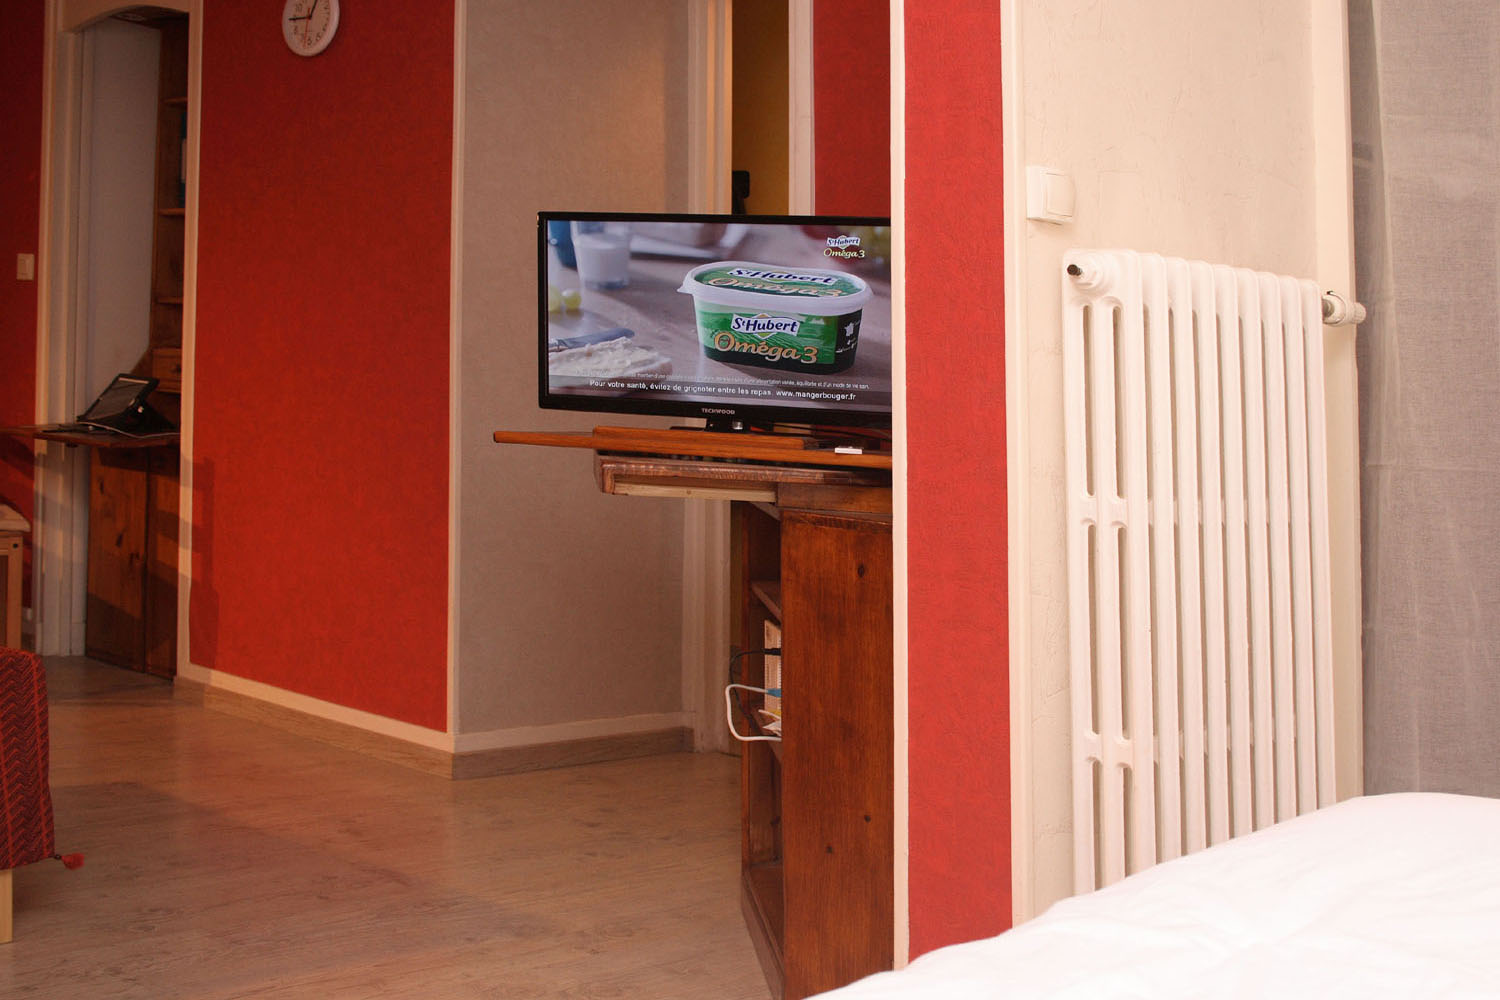 TV visible from bed